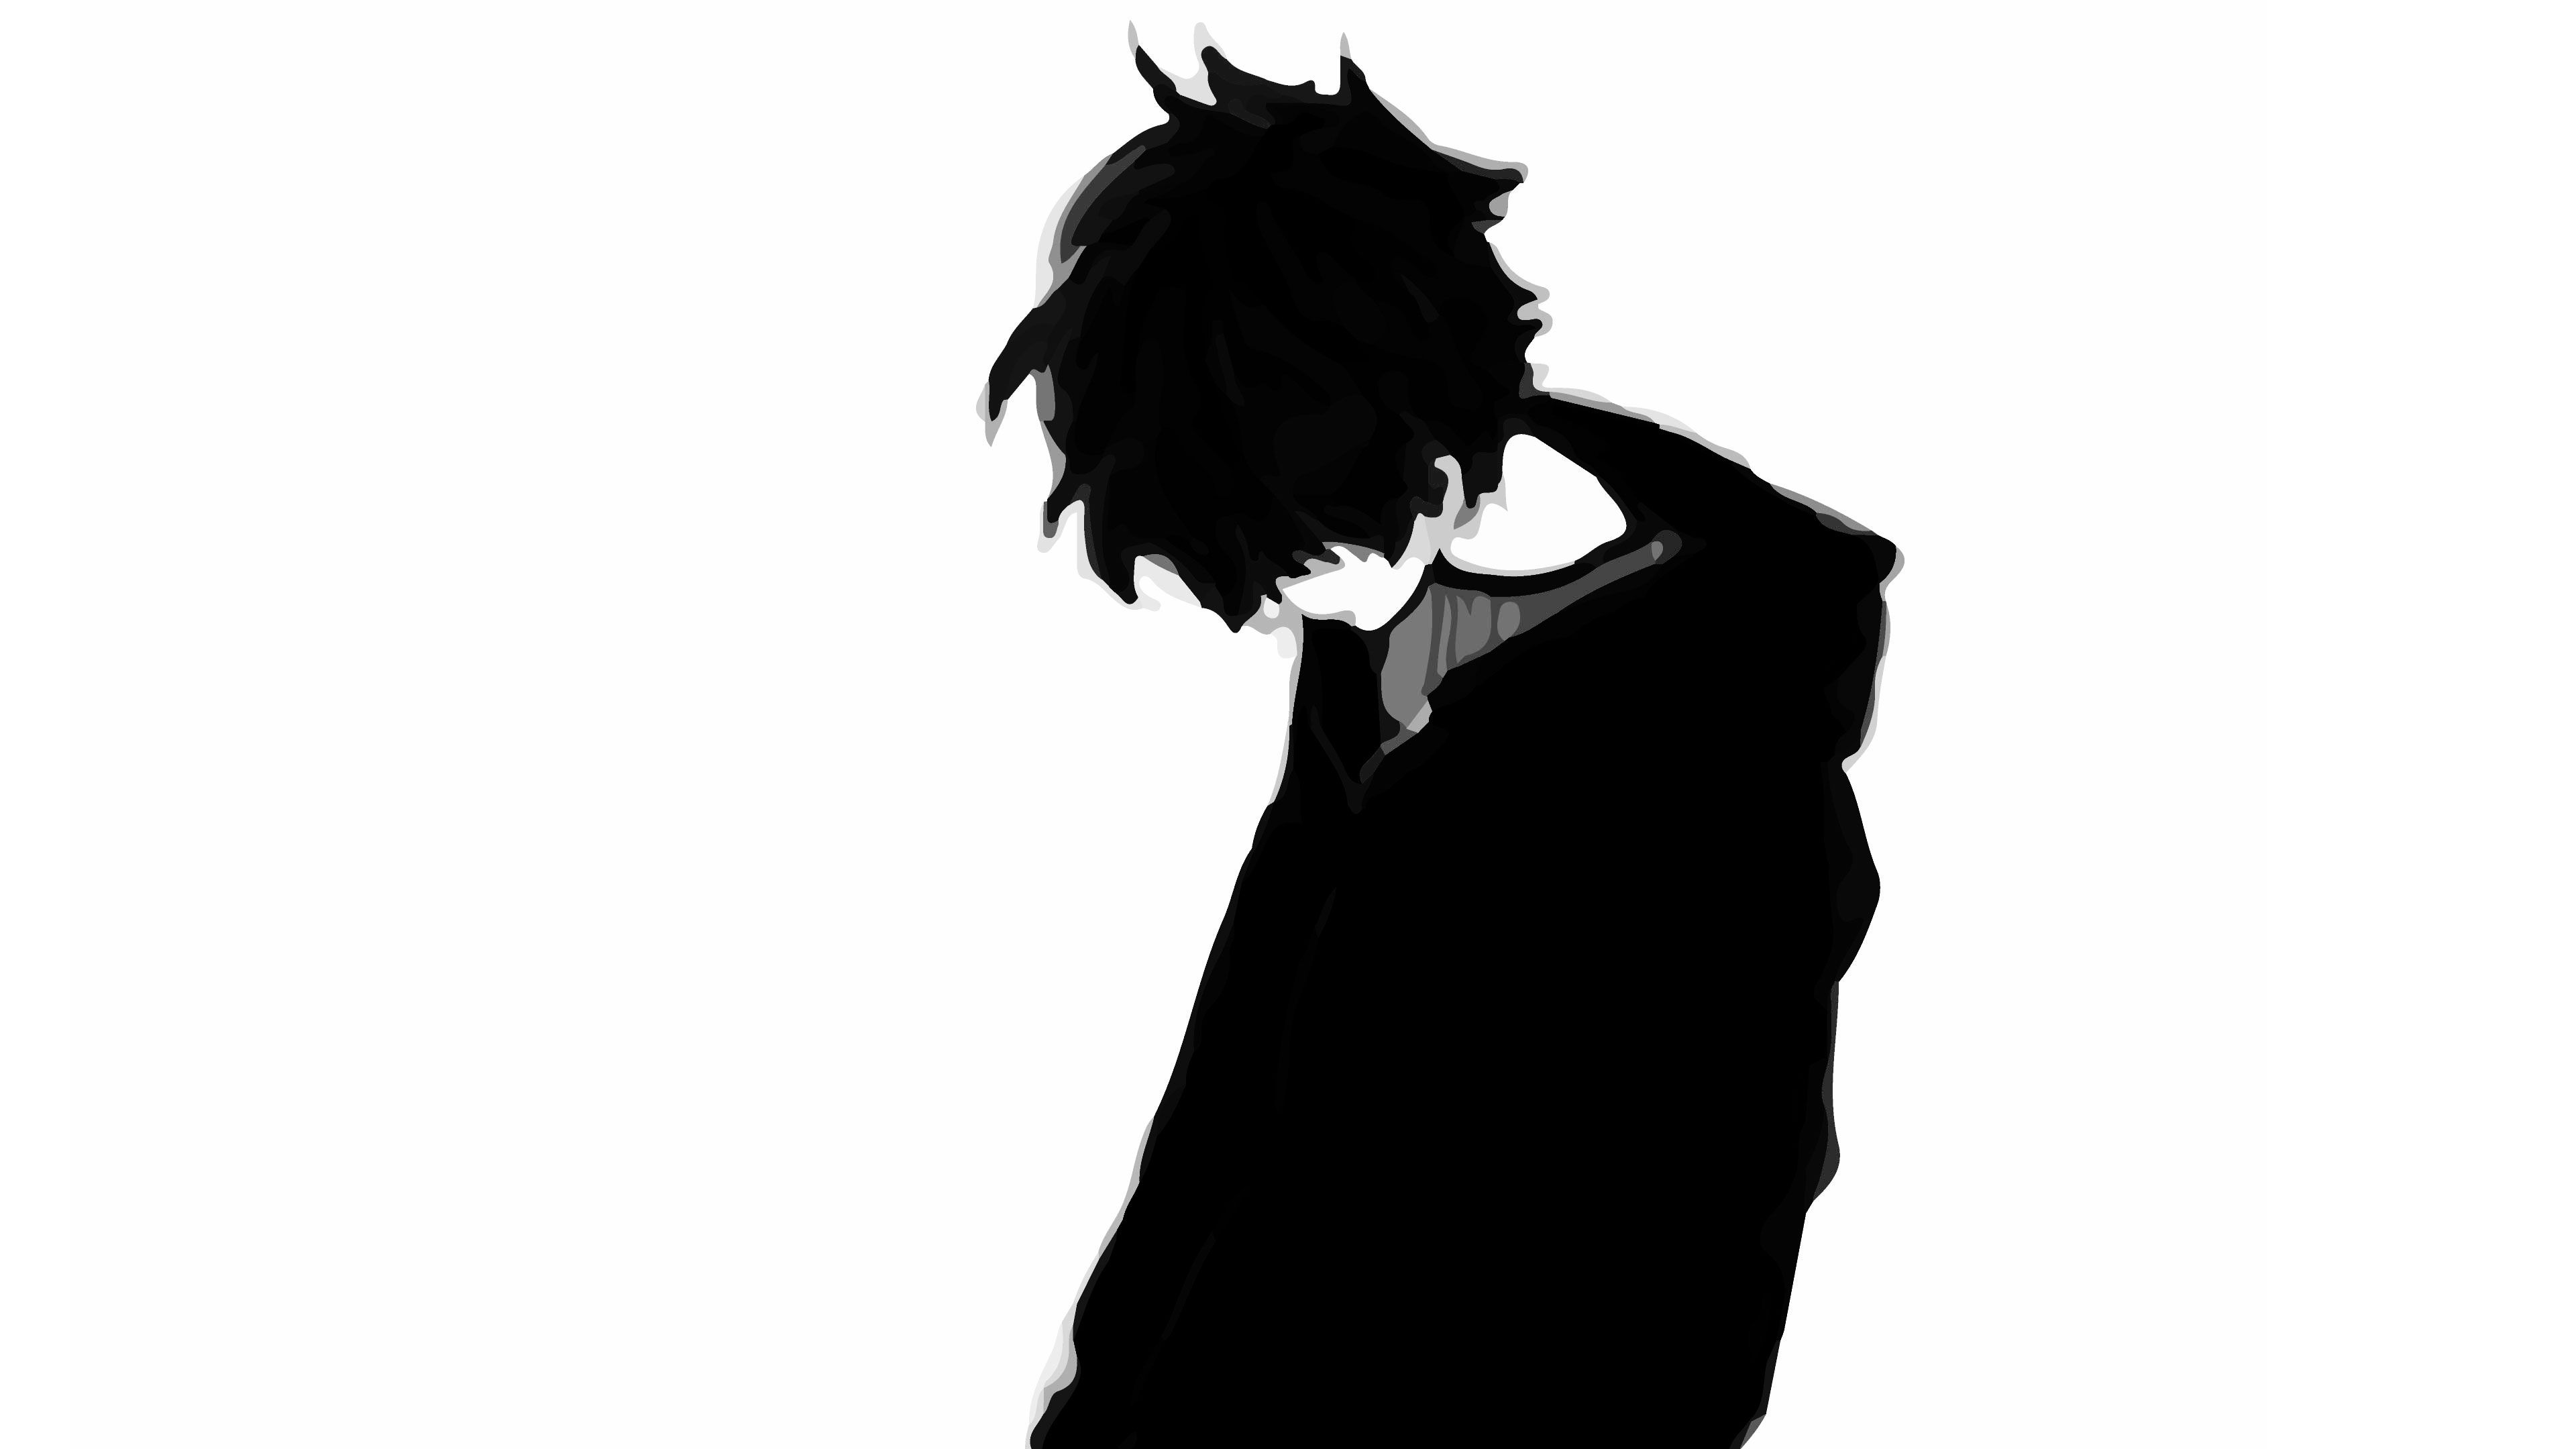 Sad anime boy images sad cartoon boy alone pic sadever